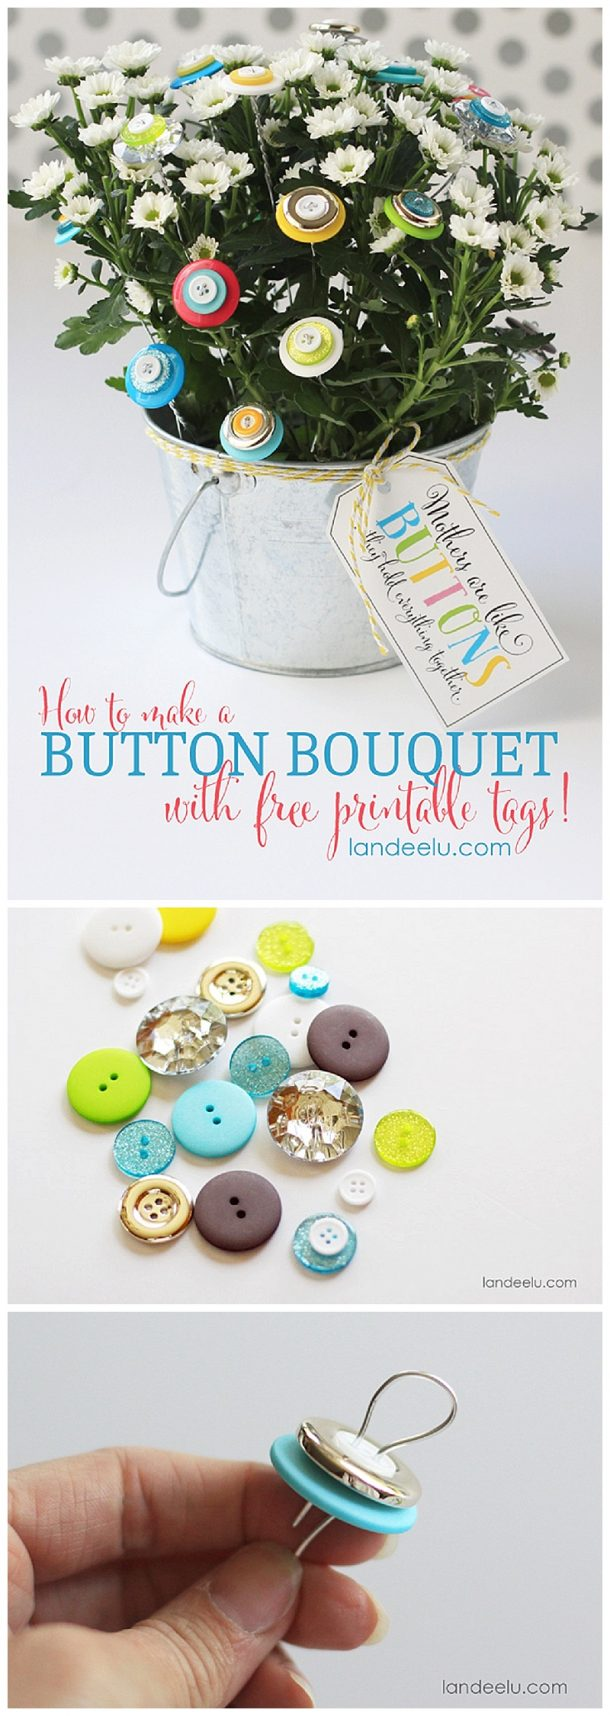 "How to make a BUTTON BOUQUET -DIY GIFT via Landeelu - Fun project Tutorial with FREE PRINTABLE Gift Tags for Mother's Day, Teacher Appreciation or a Friend - because they are the ""BUTTONS that hold us together!"" - The BEST Easy DIY Mother's Day Gifts and Treats Ideas - Holiday Craft Activity Projects, Free Printables and Favorite Brunch Desserts Recipes for Moms and Grandmas #mothersdaygifts #mothersdaygiftideas #diymothersday #diymothersdaygifts #giftsformom #giftsforgrandma"